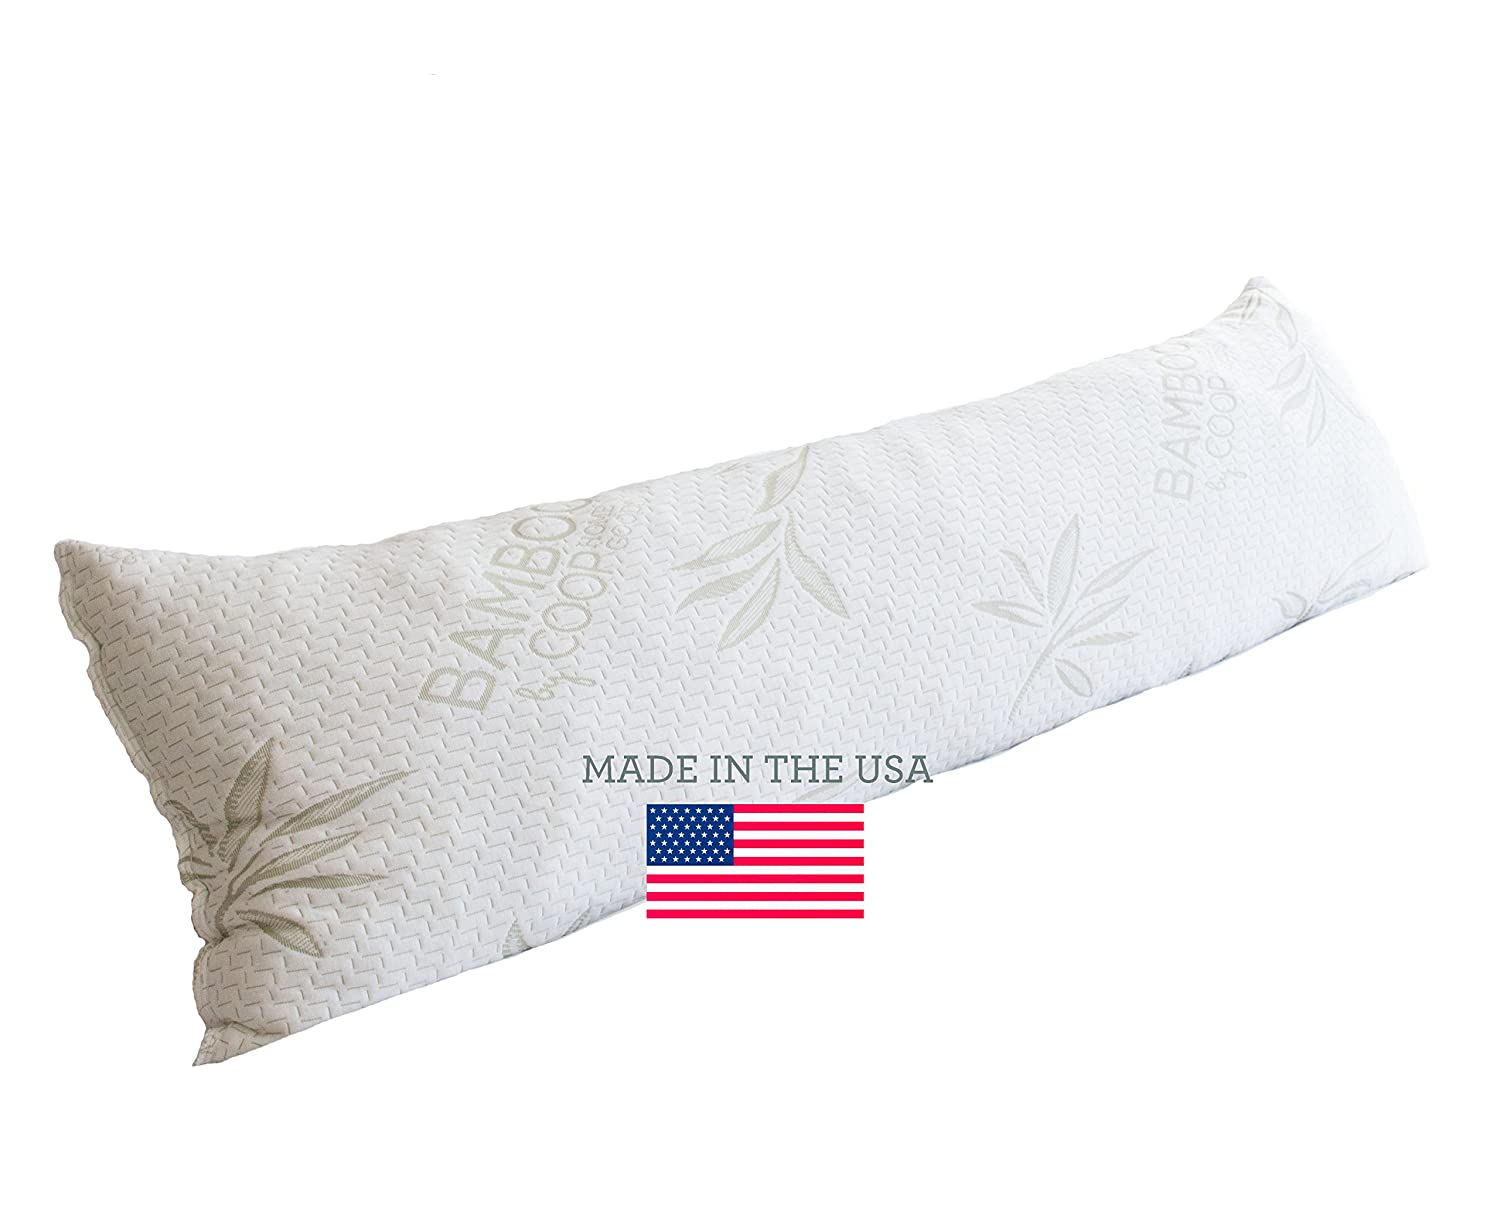 10 Best Pillows For Side Sleepers 2017 Home Reviewed